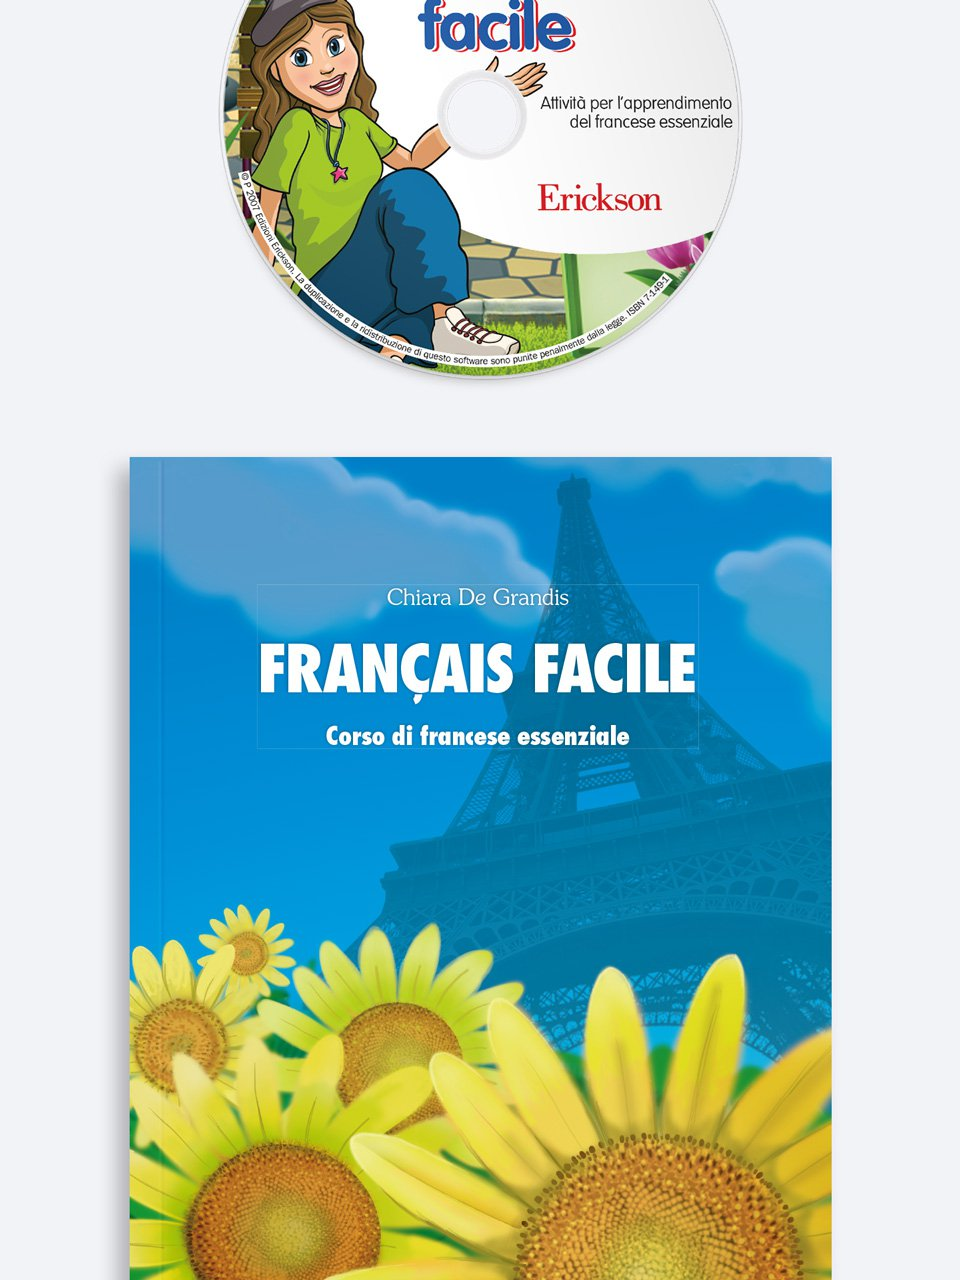 Français facile Kit (Libro + CD-Audio + Cd-Rom) - Erickson Eshop